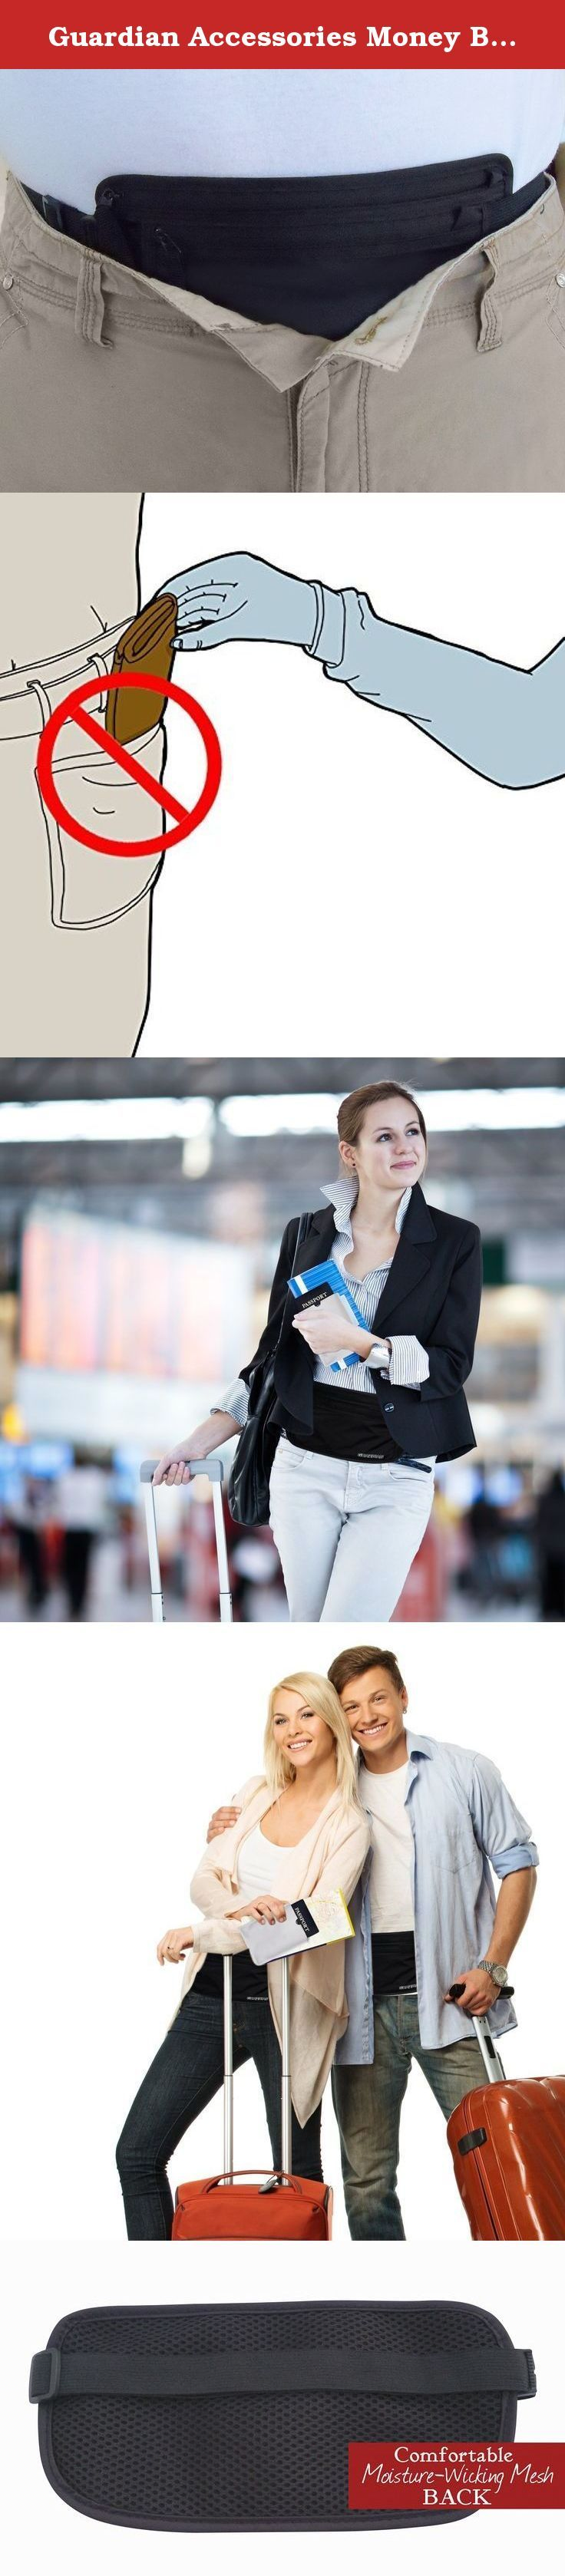 Guardian Accessories Money Belt Travel Safety Wallet w/ 3 RFID Sleeves. The Guardian Travel Wallet Money Belt is our most popular security money belt. It has two zippered compartments with a water resistant coating so you can separate your currency and credit cards from your passport or other valuables, keeping them dry, hidden, secure and safe. The moisture wicking back panel keeps it comfortable and dry against your skin. Adjustable, water resistant, slim, and stylish for all your...